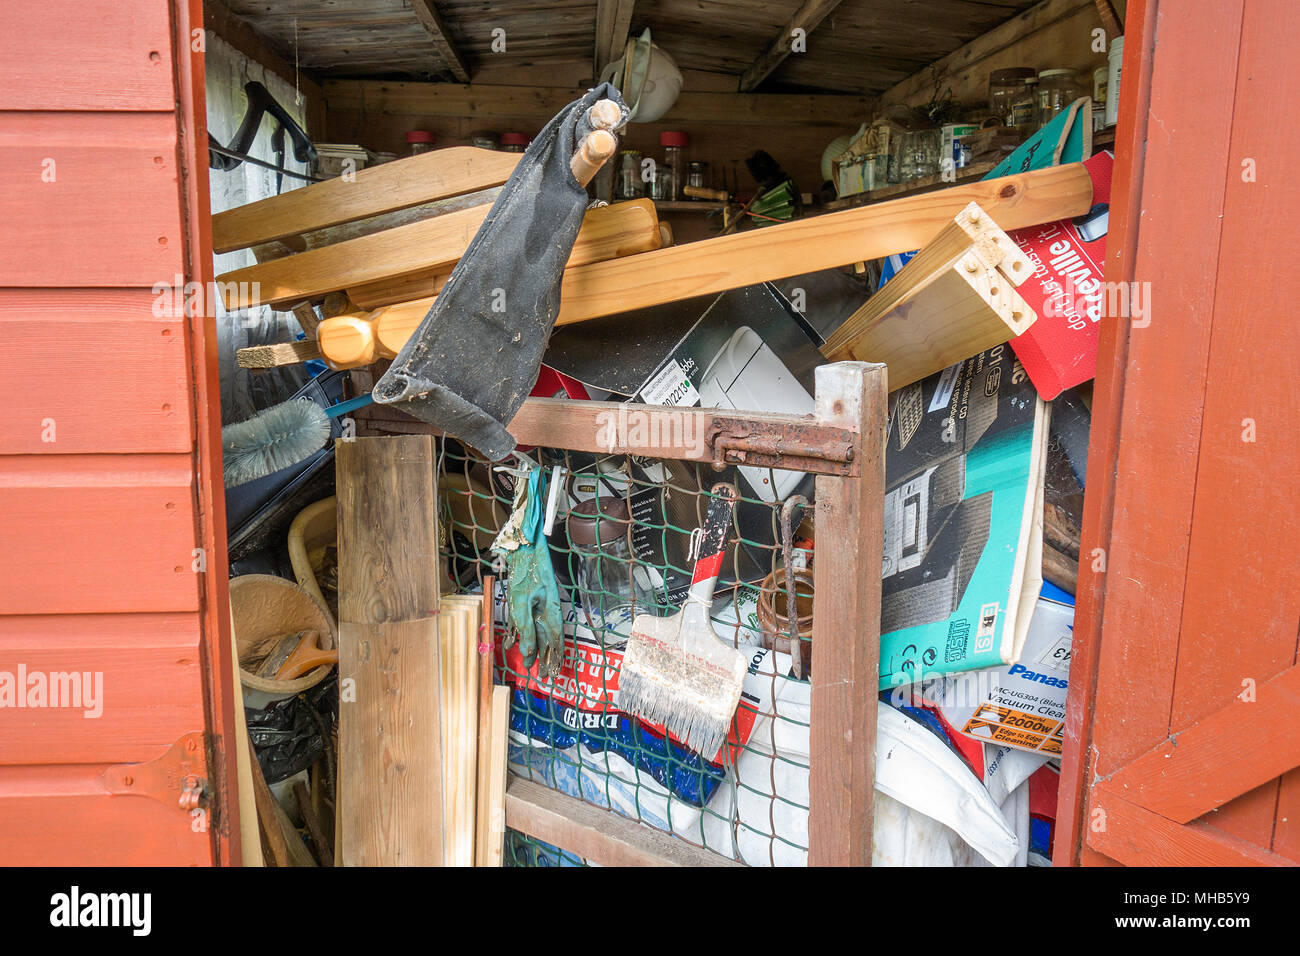 garden shed full packed tools household items junk. - Stock Image